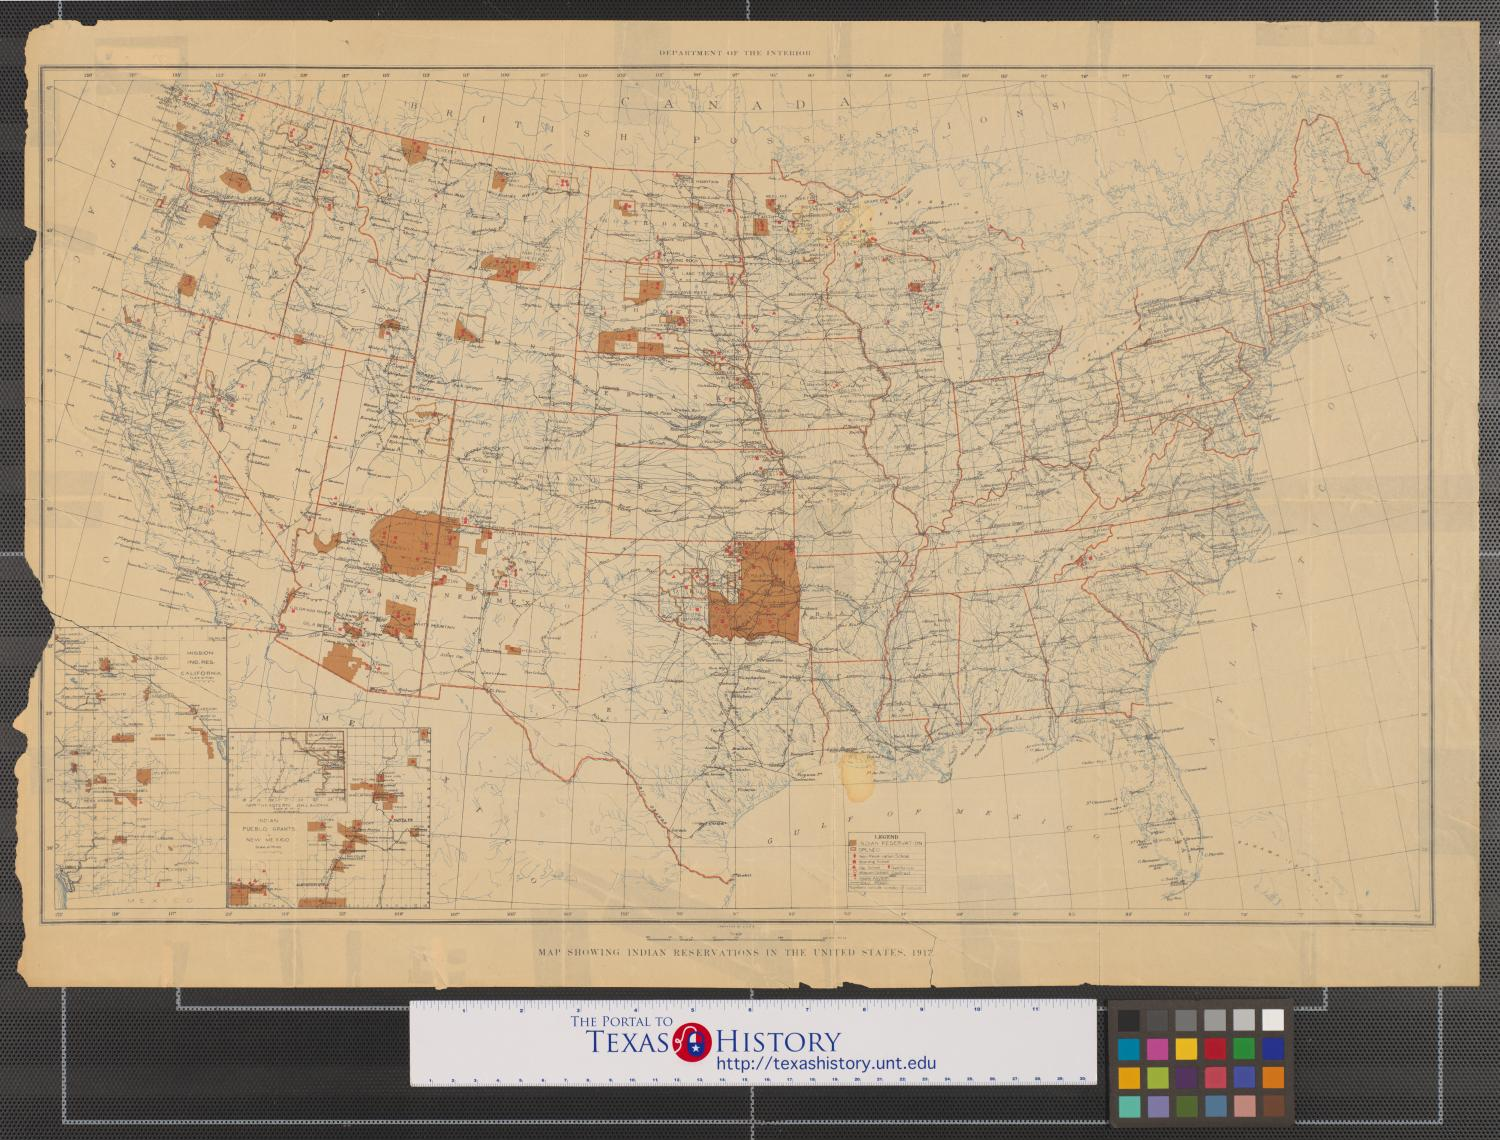 Map showing Indian reservations in the United States, 1917 ...